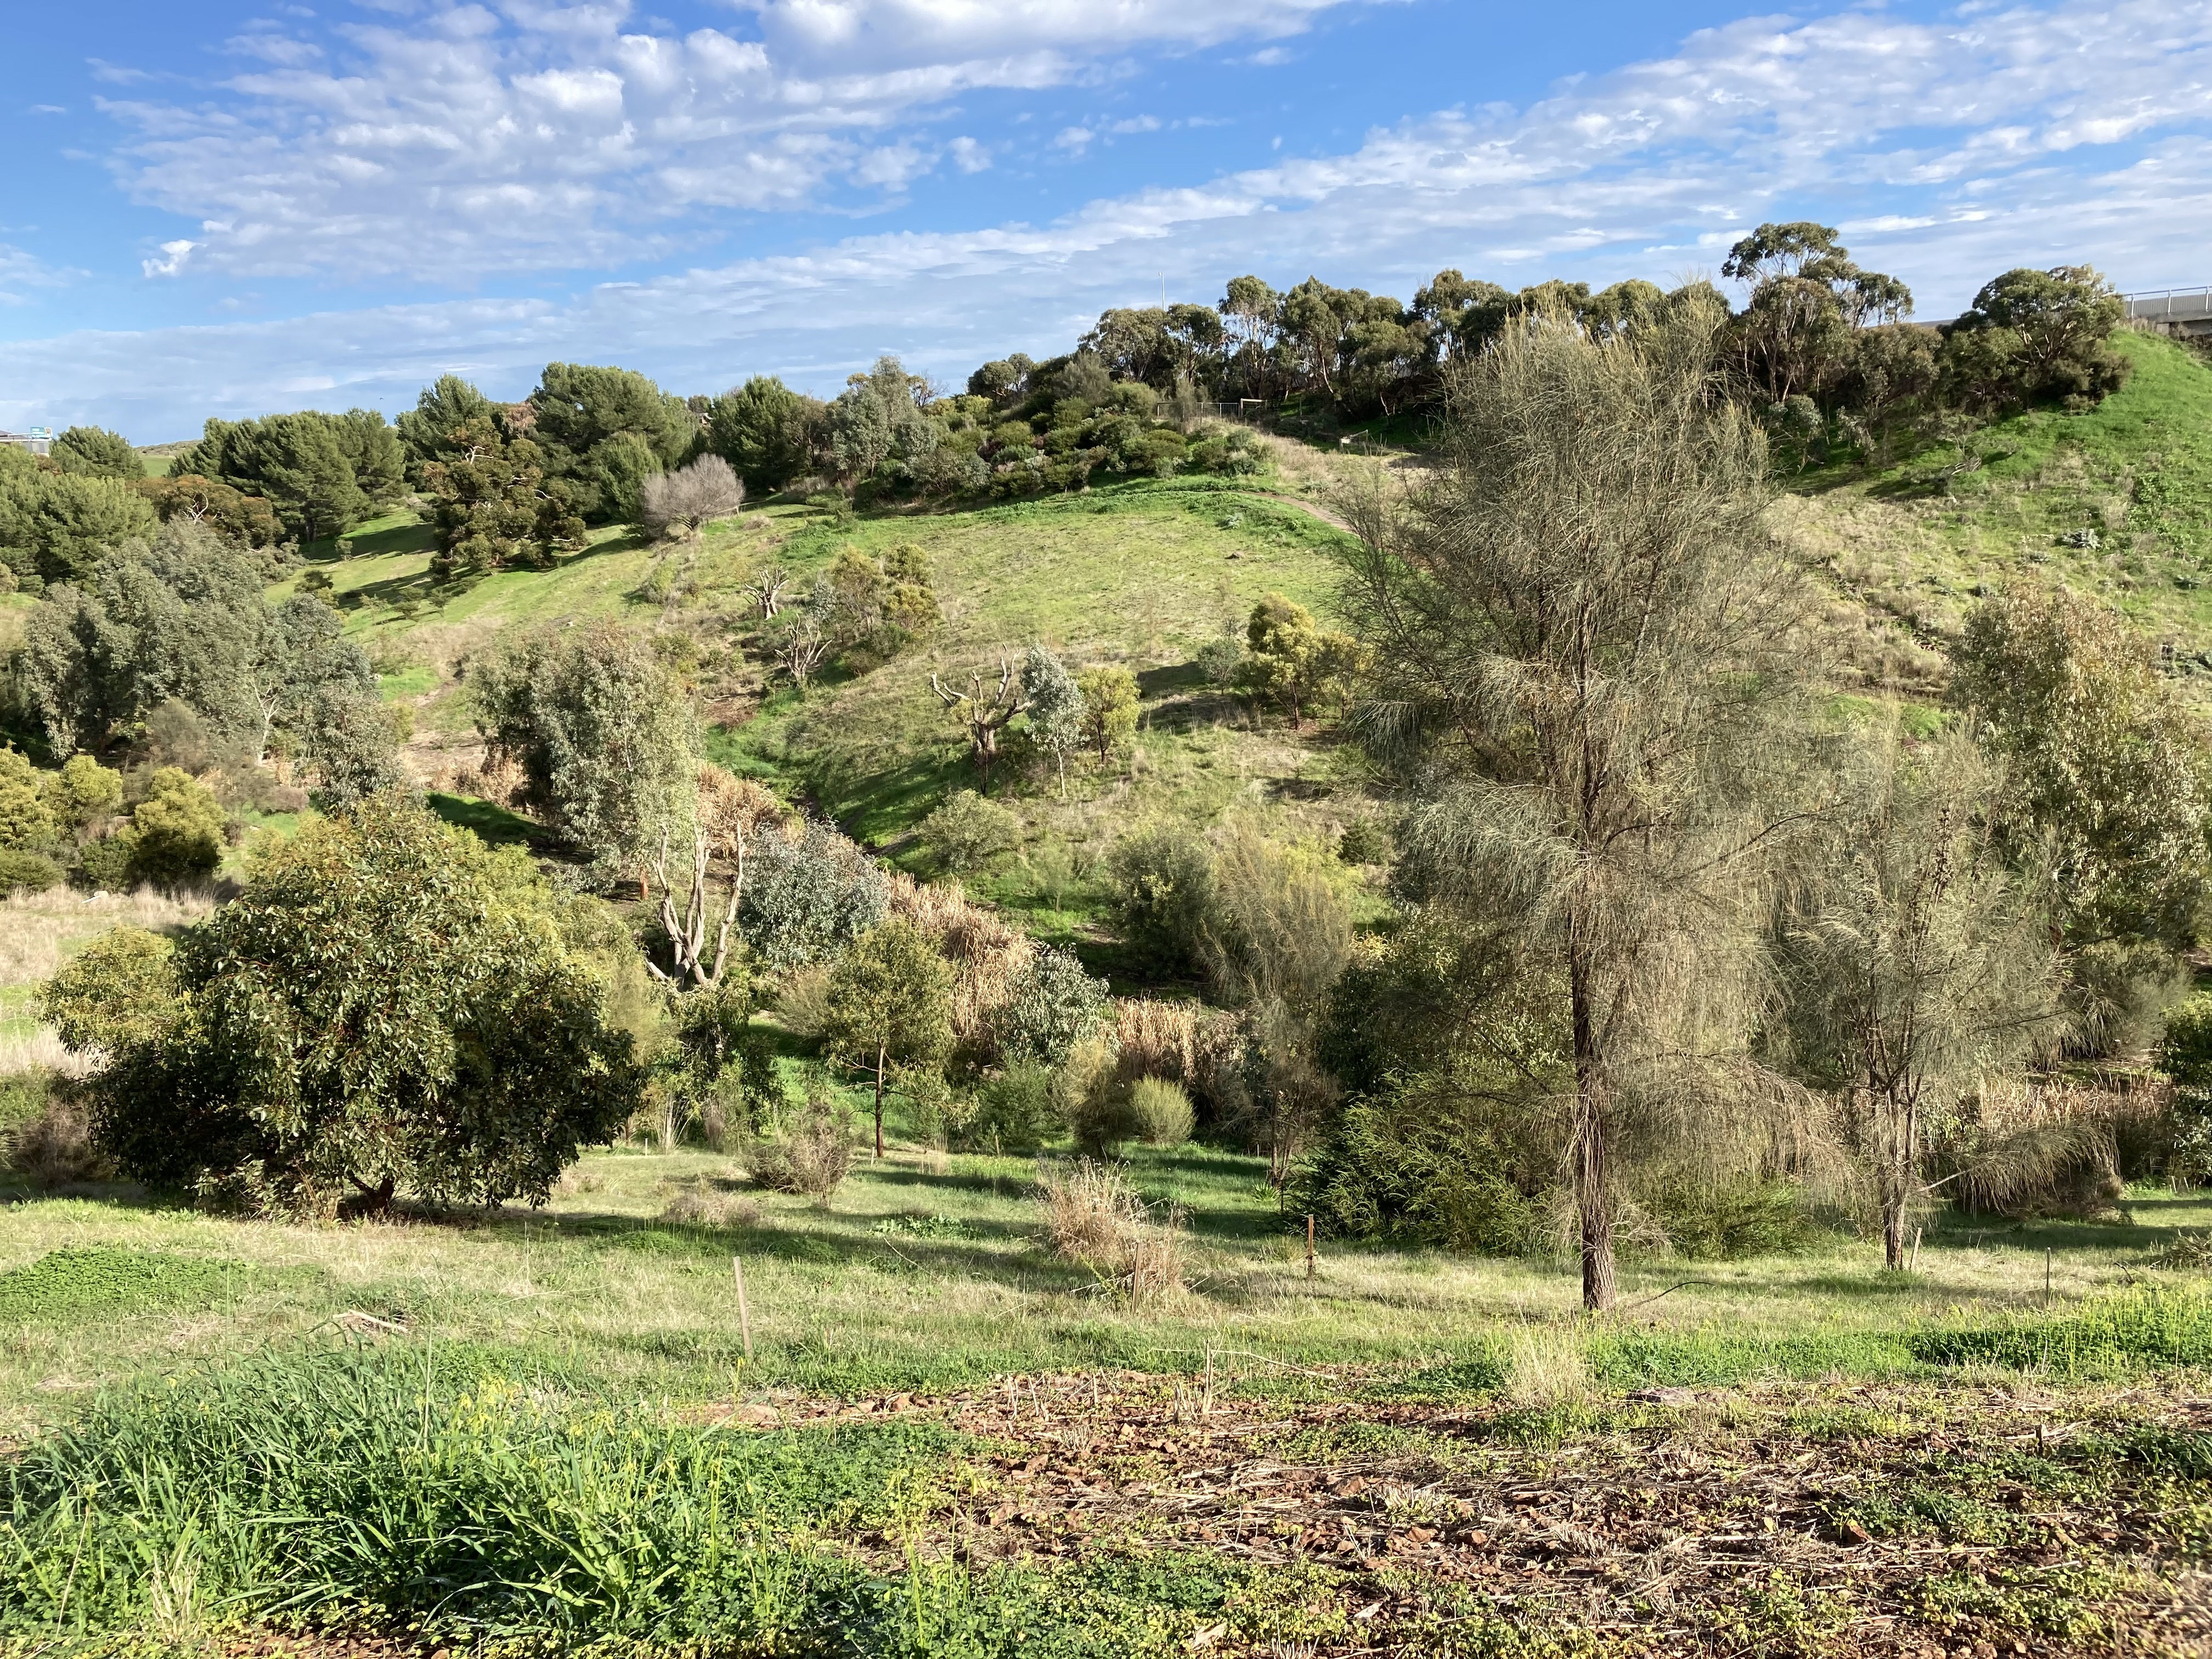 All you need to know about a new environmental project in Adelaide's south - Green Adelaide